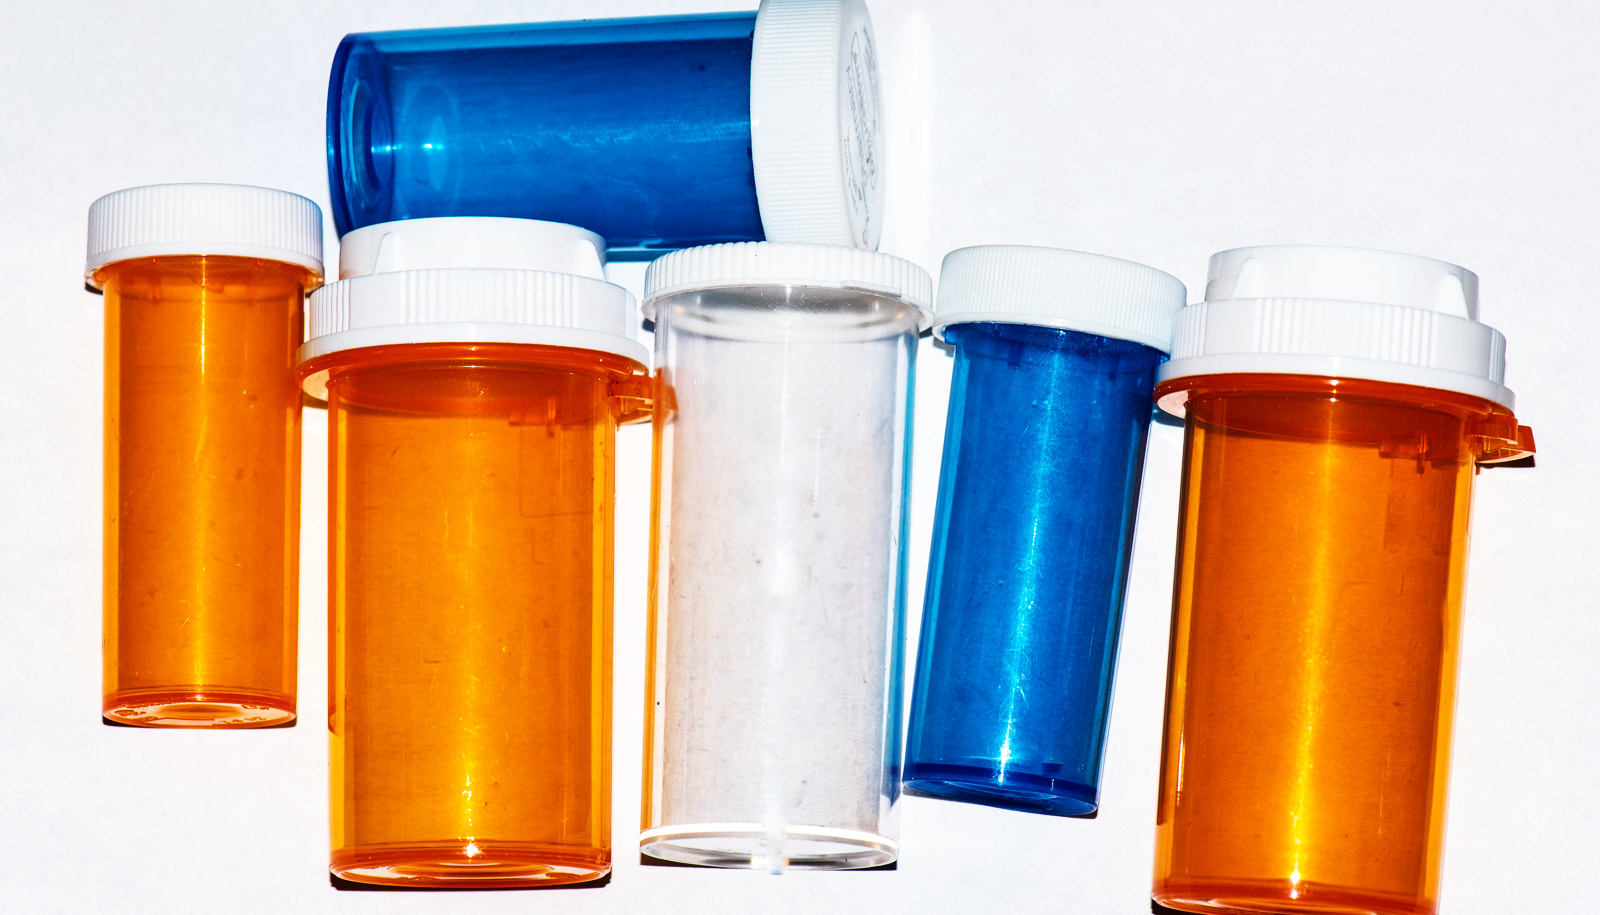 Sometimes generic drugs actually cost more